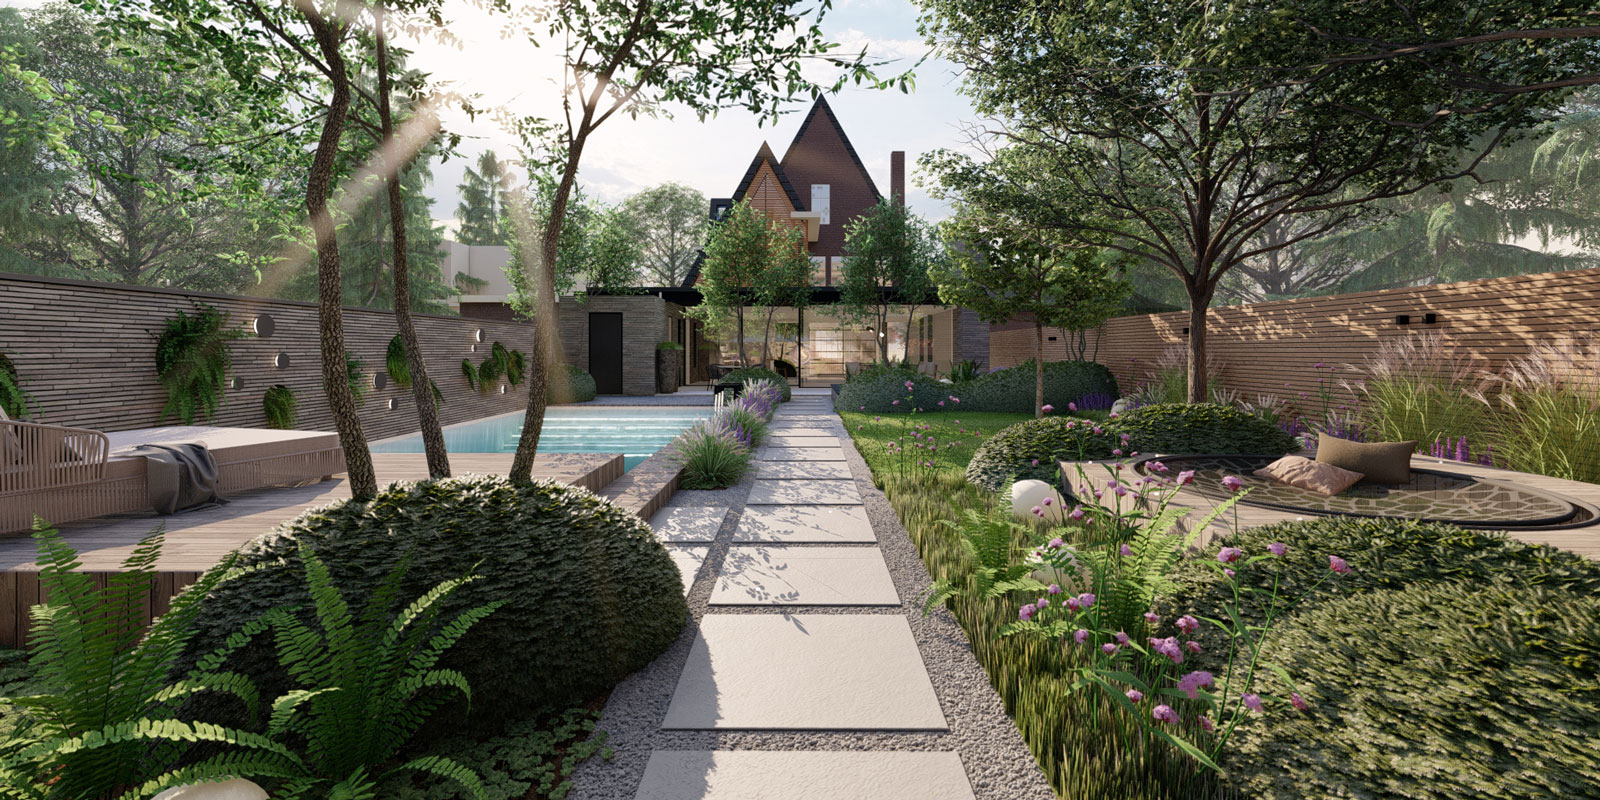 tuin inspiratie, Knops Tuinproject, tuin, The Art of Living